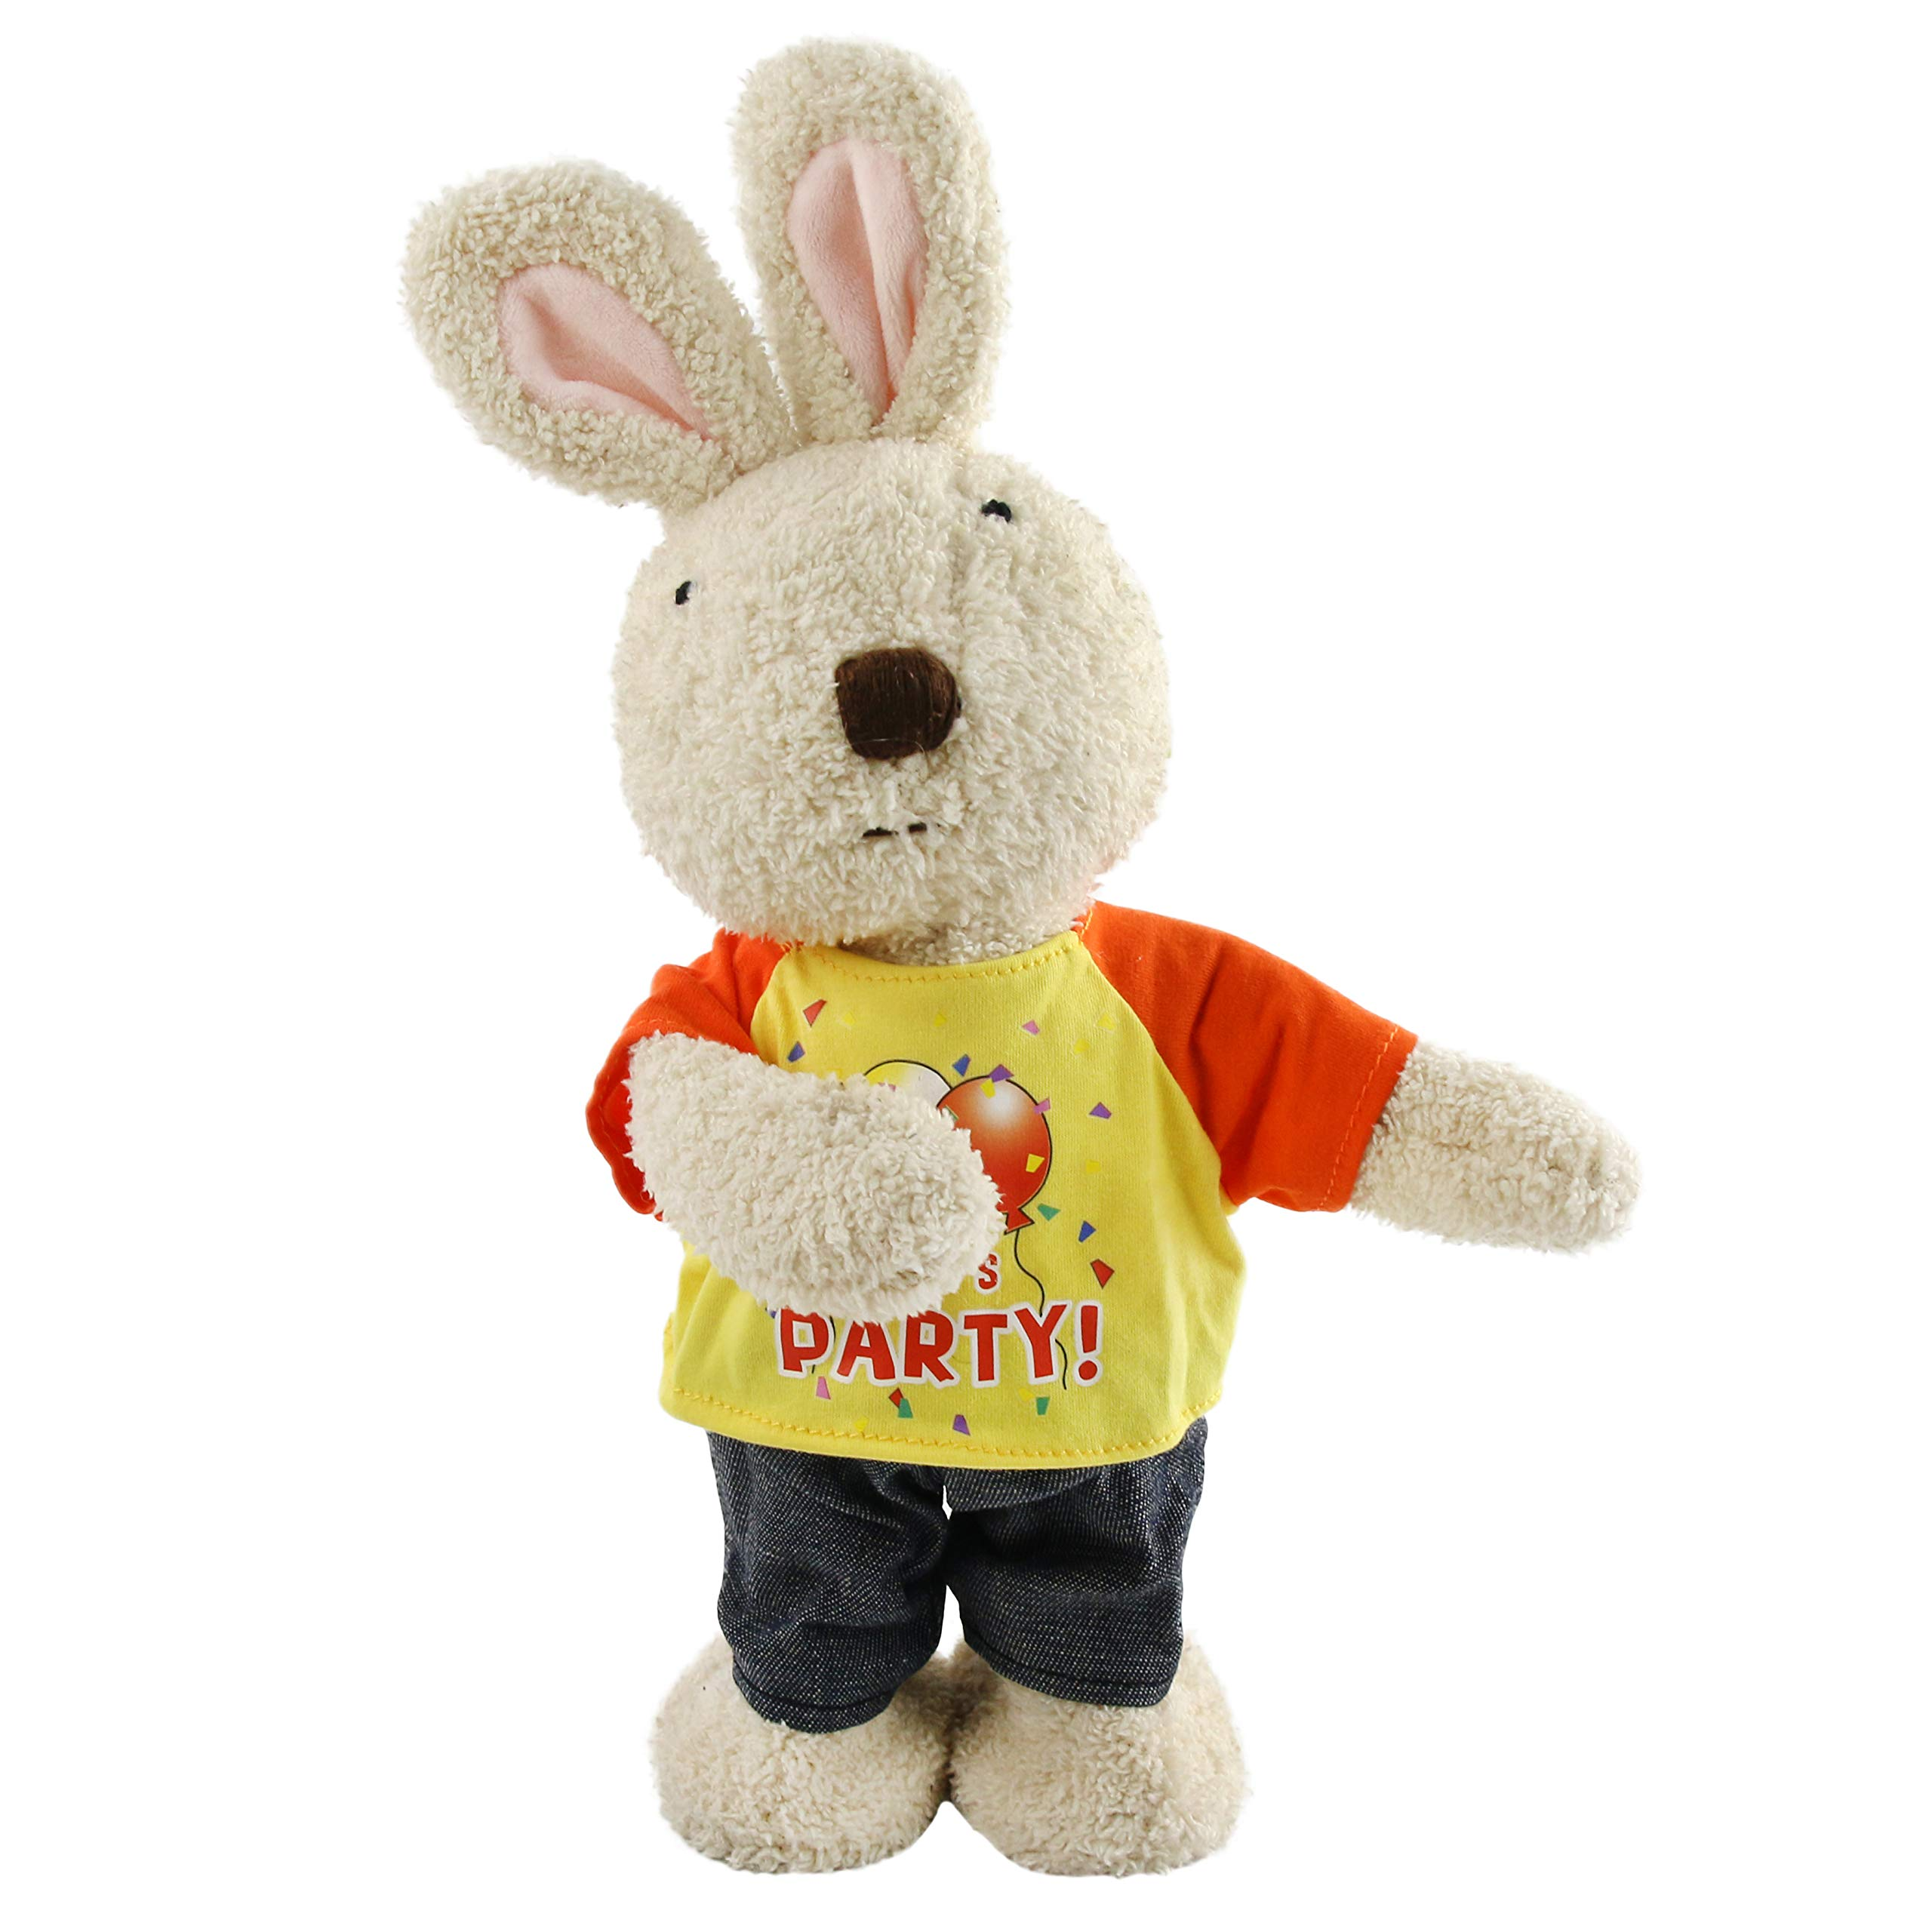 Houwsbaby Electric Rabbit in Detachable T-Shirt Interactive Stuffed Animal Musical Bunny Dancing Singing Plush Toy Gift for Kids, 15 inches (Yellow) by Houwsbaby